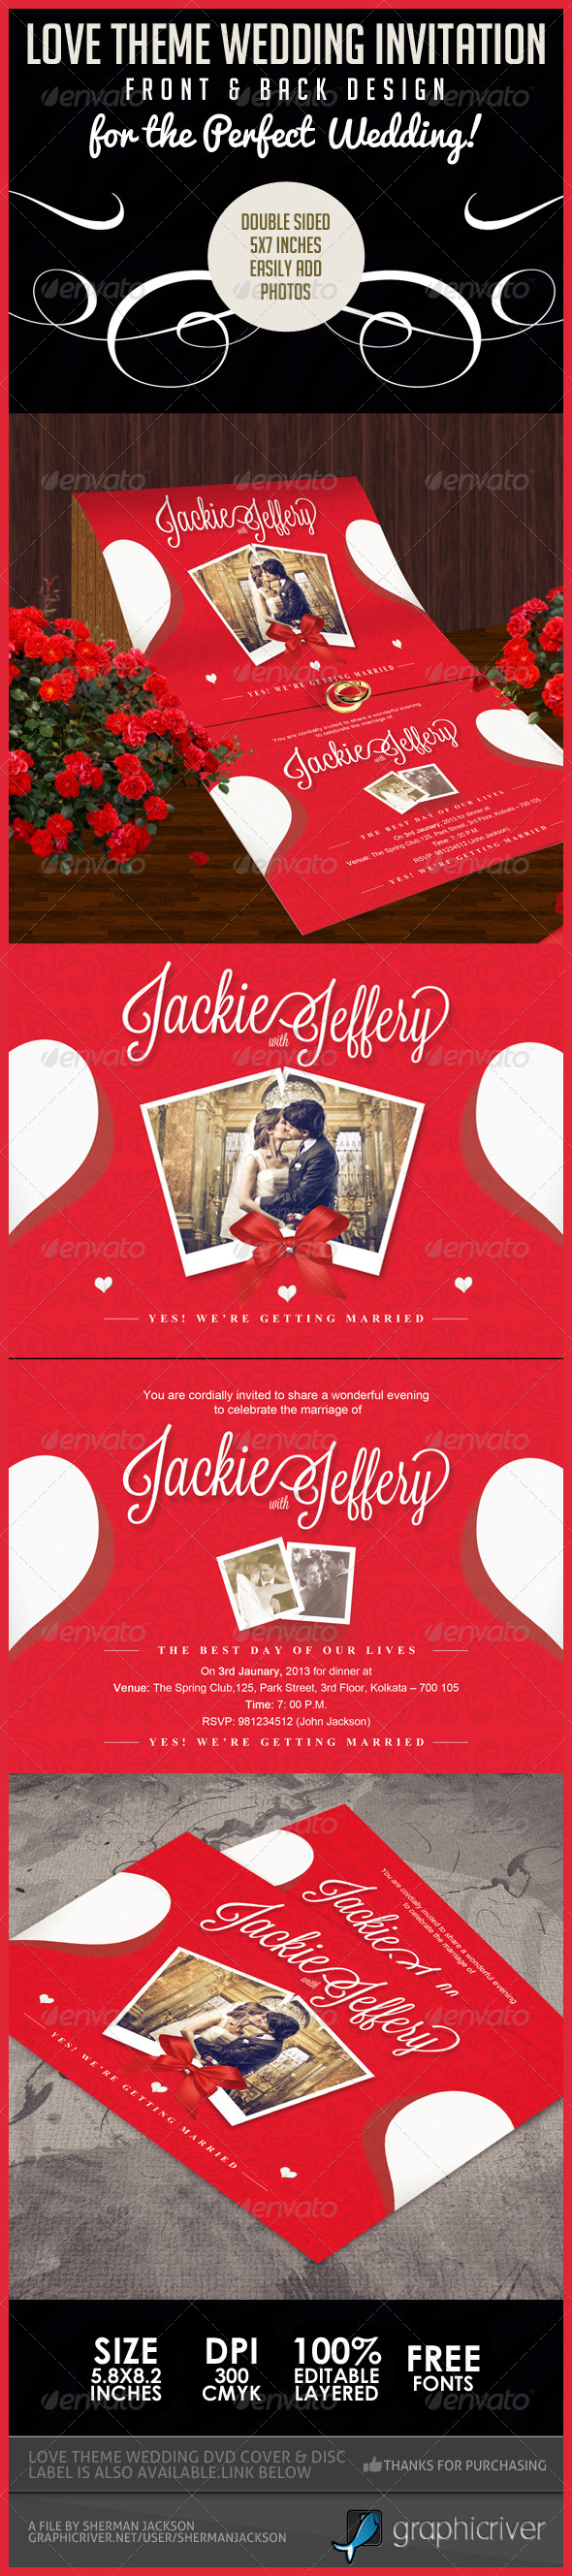 Love Theme Wedding Invitation Card - Weddings Cards & Invites